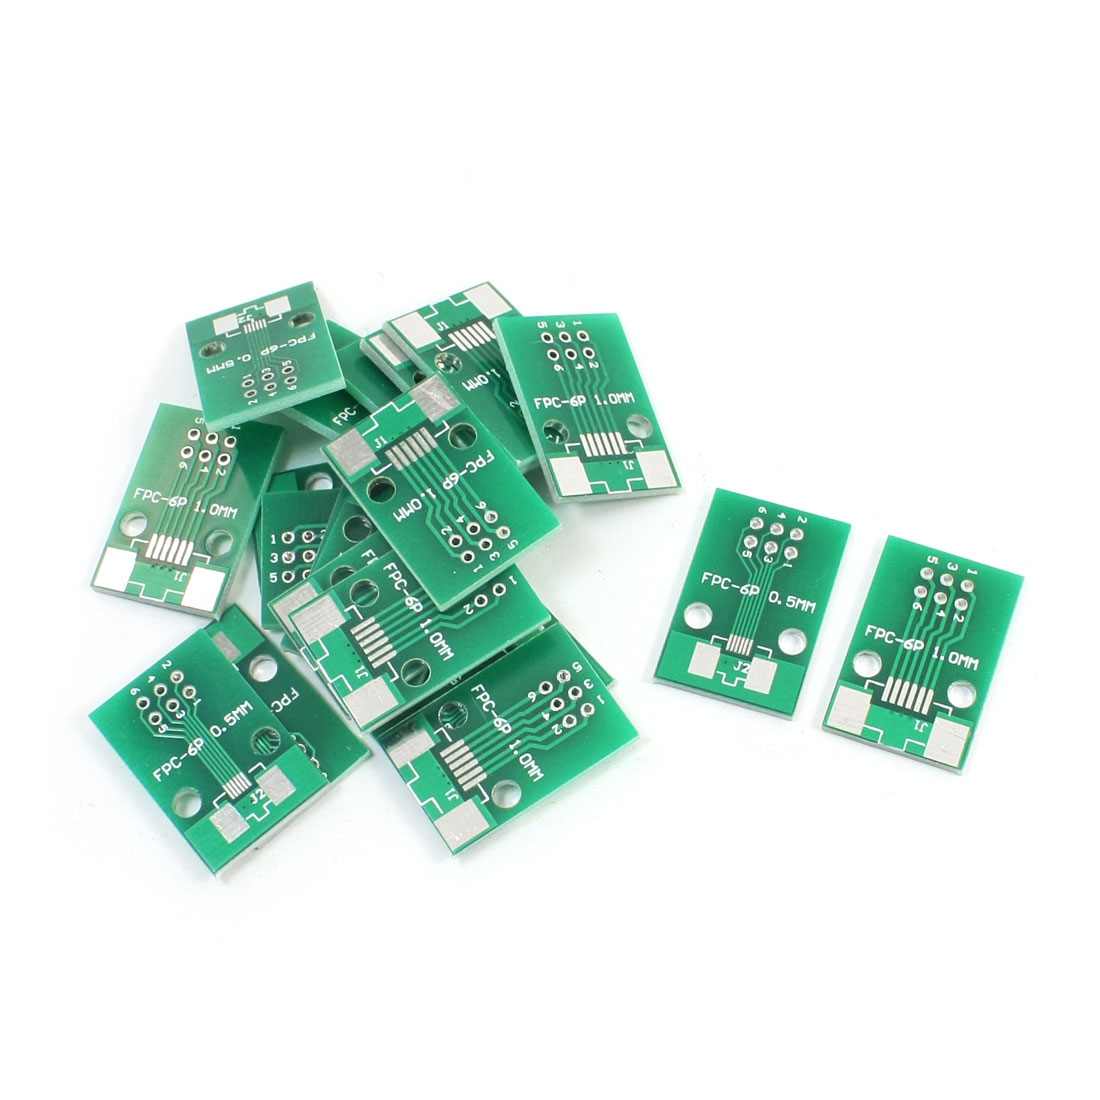 20 PCS FPC-6P FFC-6P 0.5mm 1mm to DIP6 2.54mm Pitch Double Sides Adapter PCB Board Plate Converter